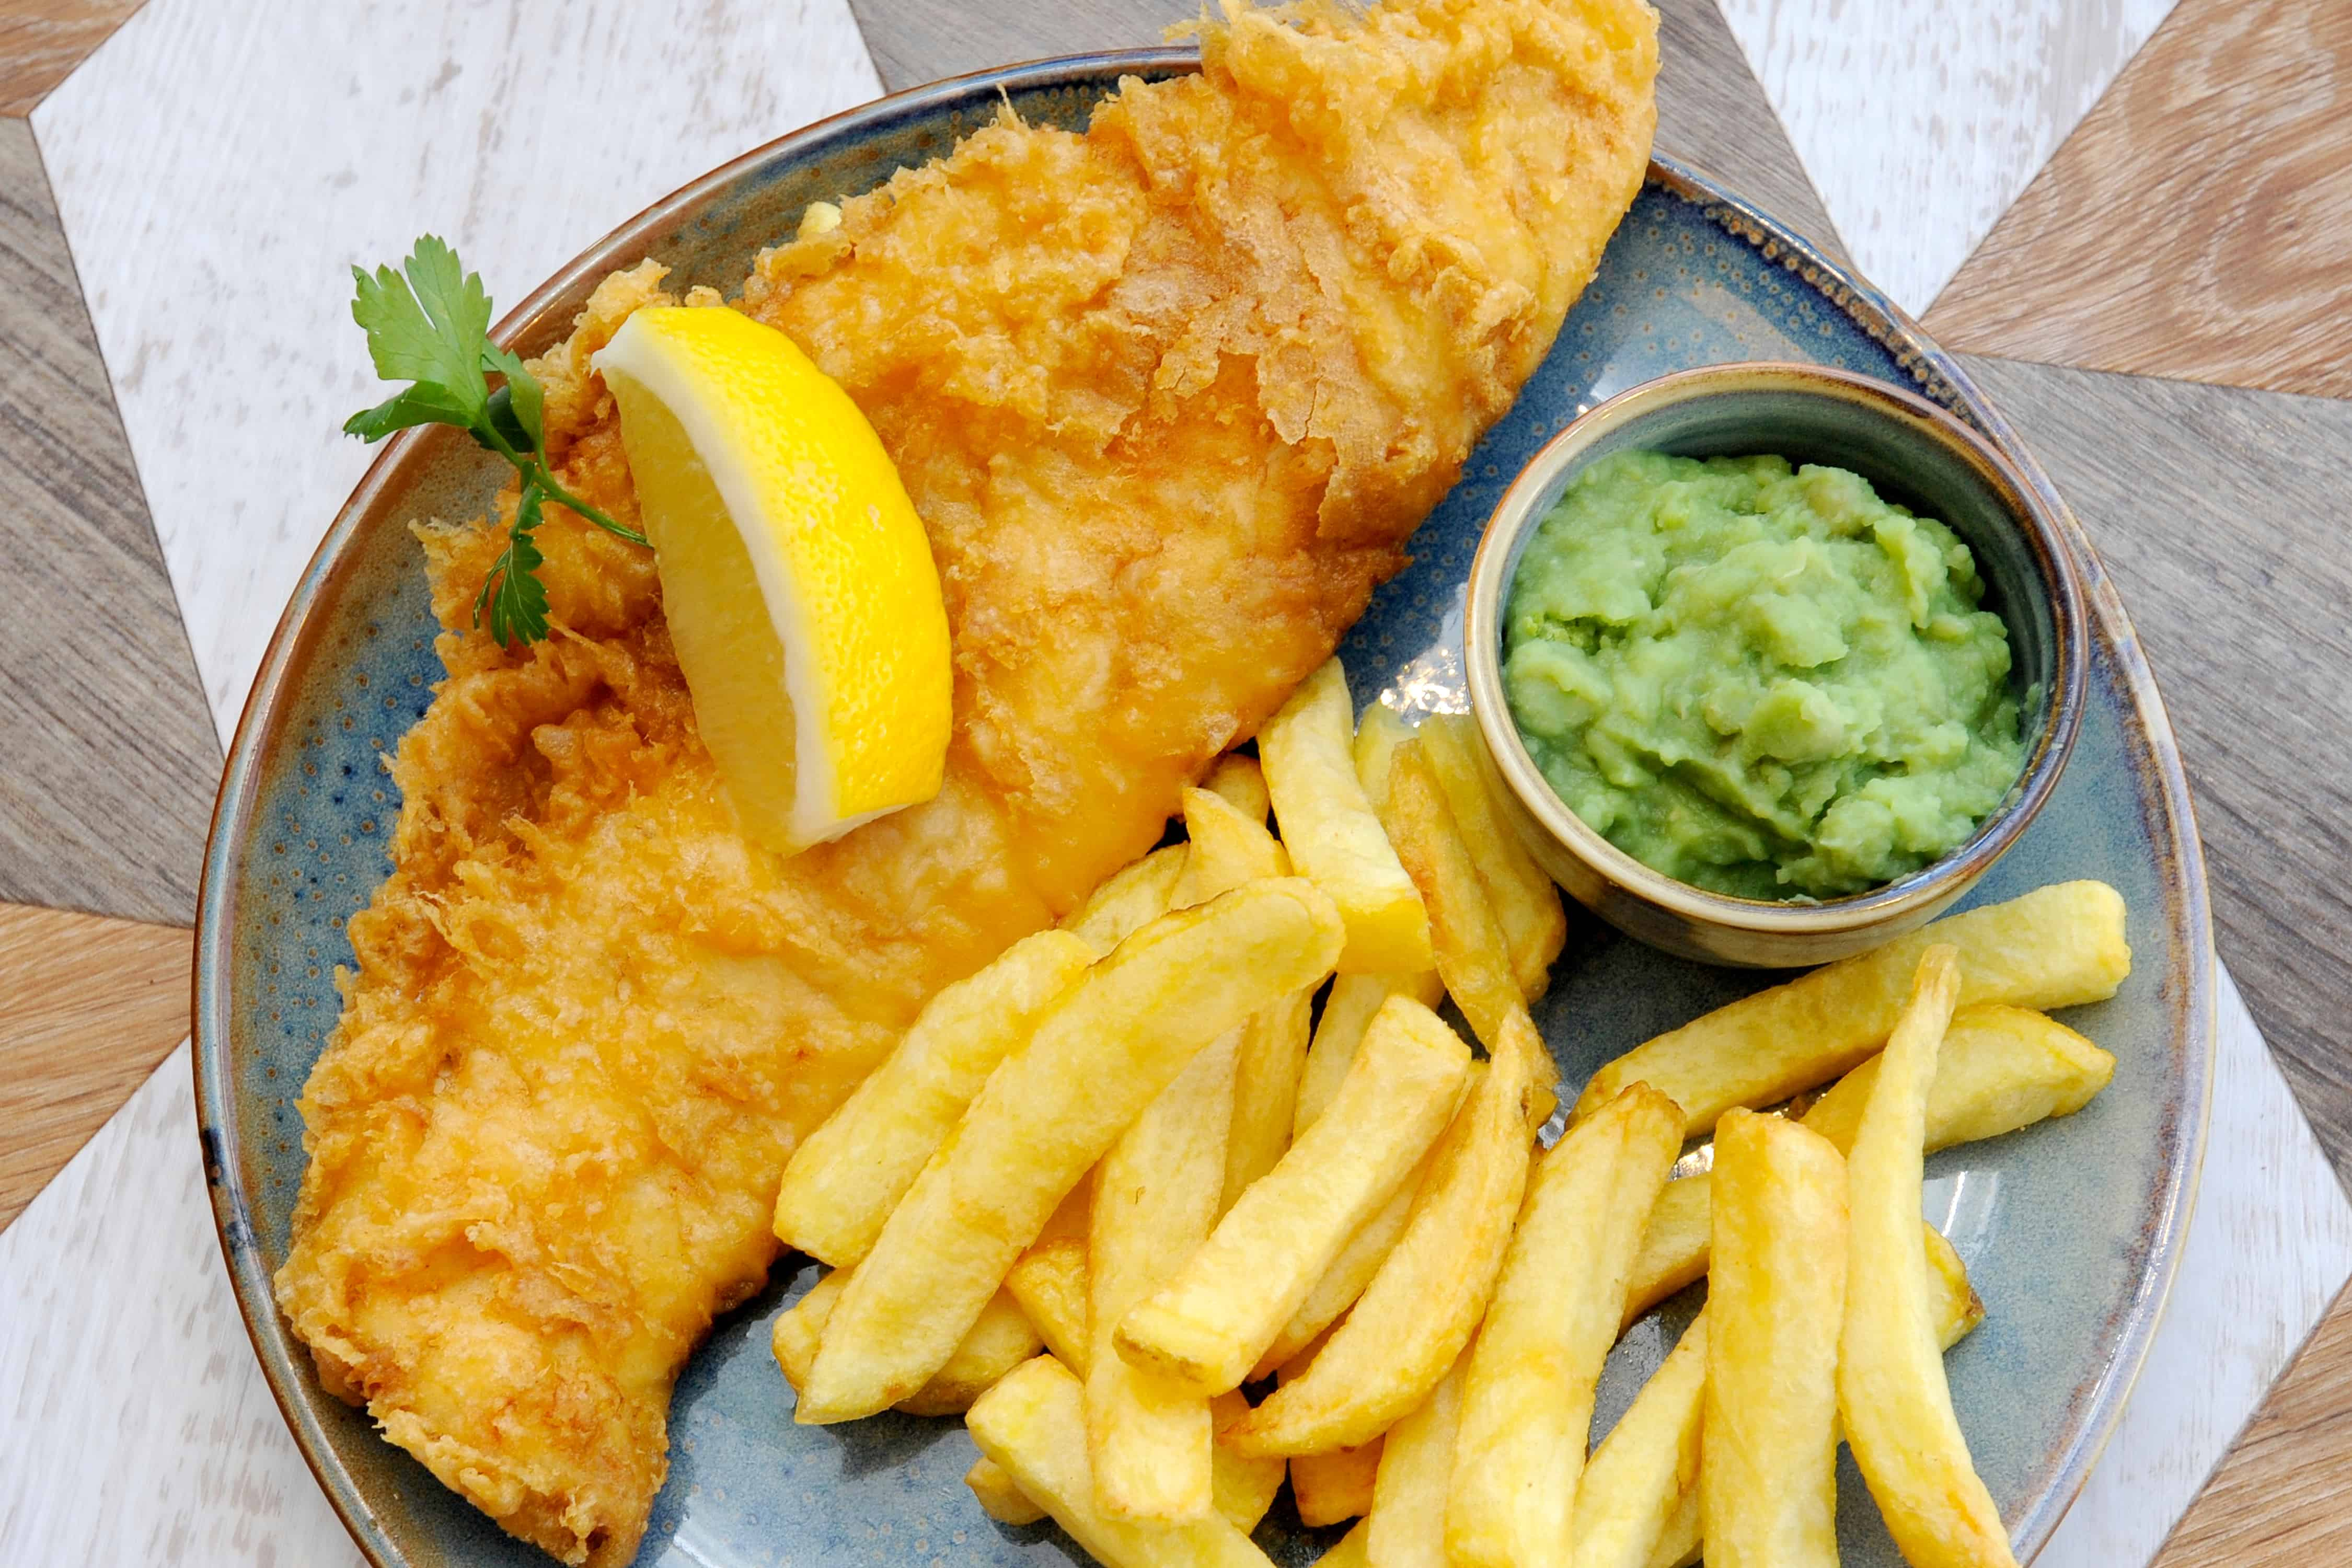 The 2020 Top 10 Fish & Chip Restaurants Announced